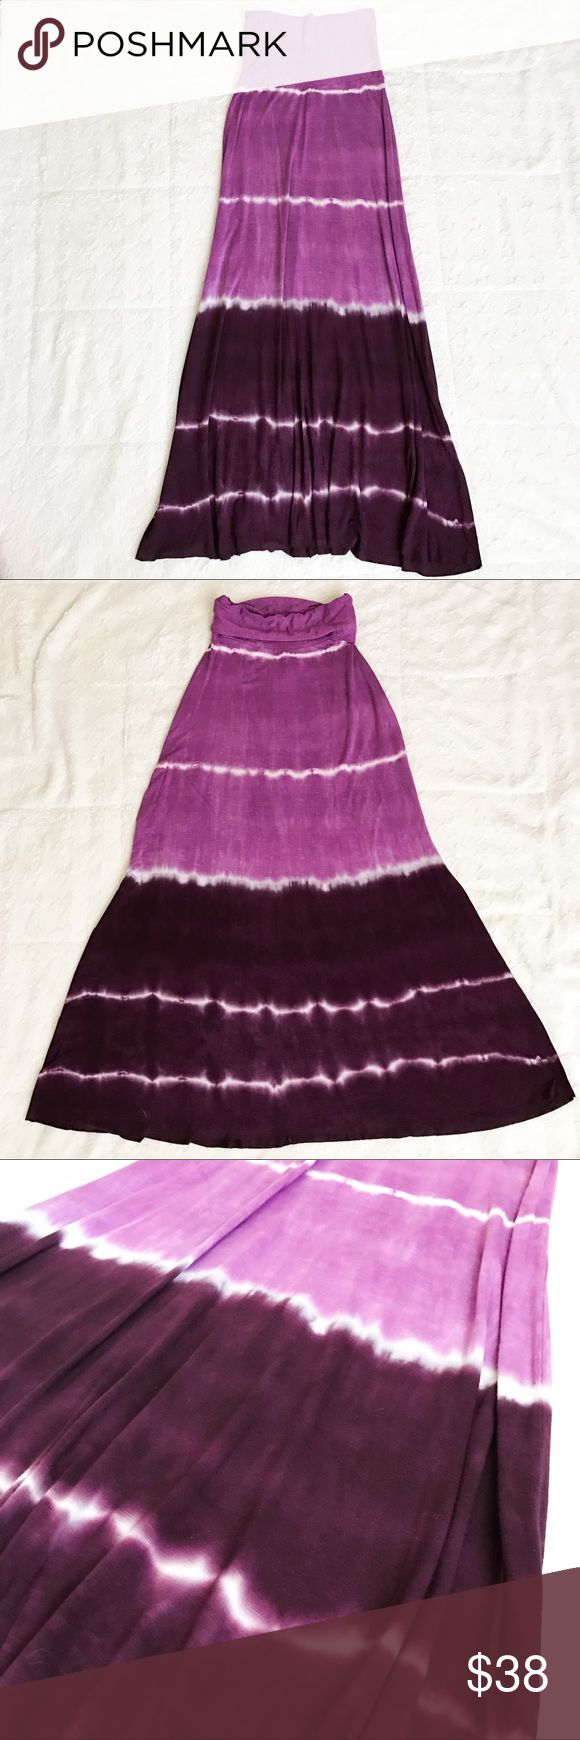 Gorgeous Lucky Brand Purple Maxi Skirt Size XS Beautiful Purple tie dye Lucky Brand Maxi Skirt! I only wore this once, so it is in Excellent condition! The top can be worn as a high-waist, or can be rolled over for a lower rise. You could probably even wear this as a dress and pull it all the way up. Fabric is super soft and comfy. Open to reasonable offers, thanks for looking! Lucky Brand Skirts Maxi